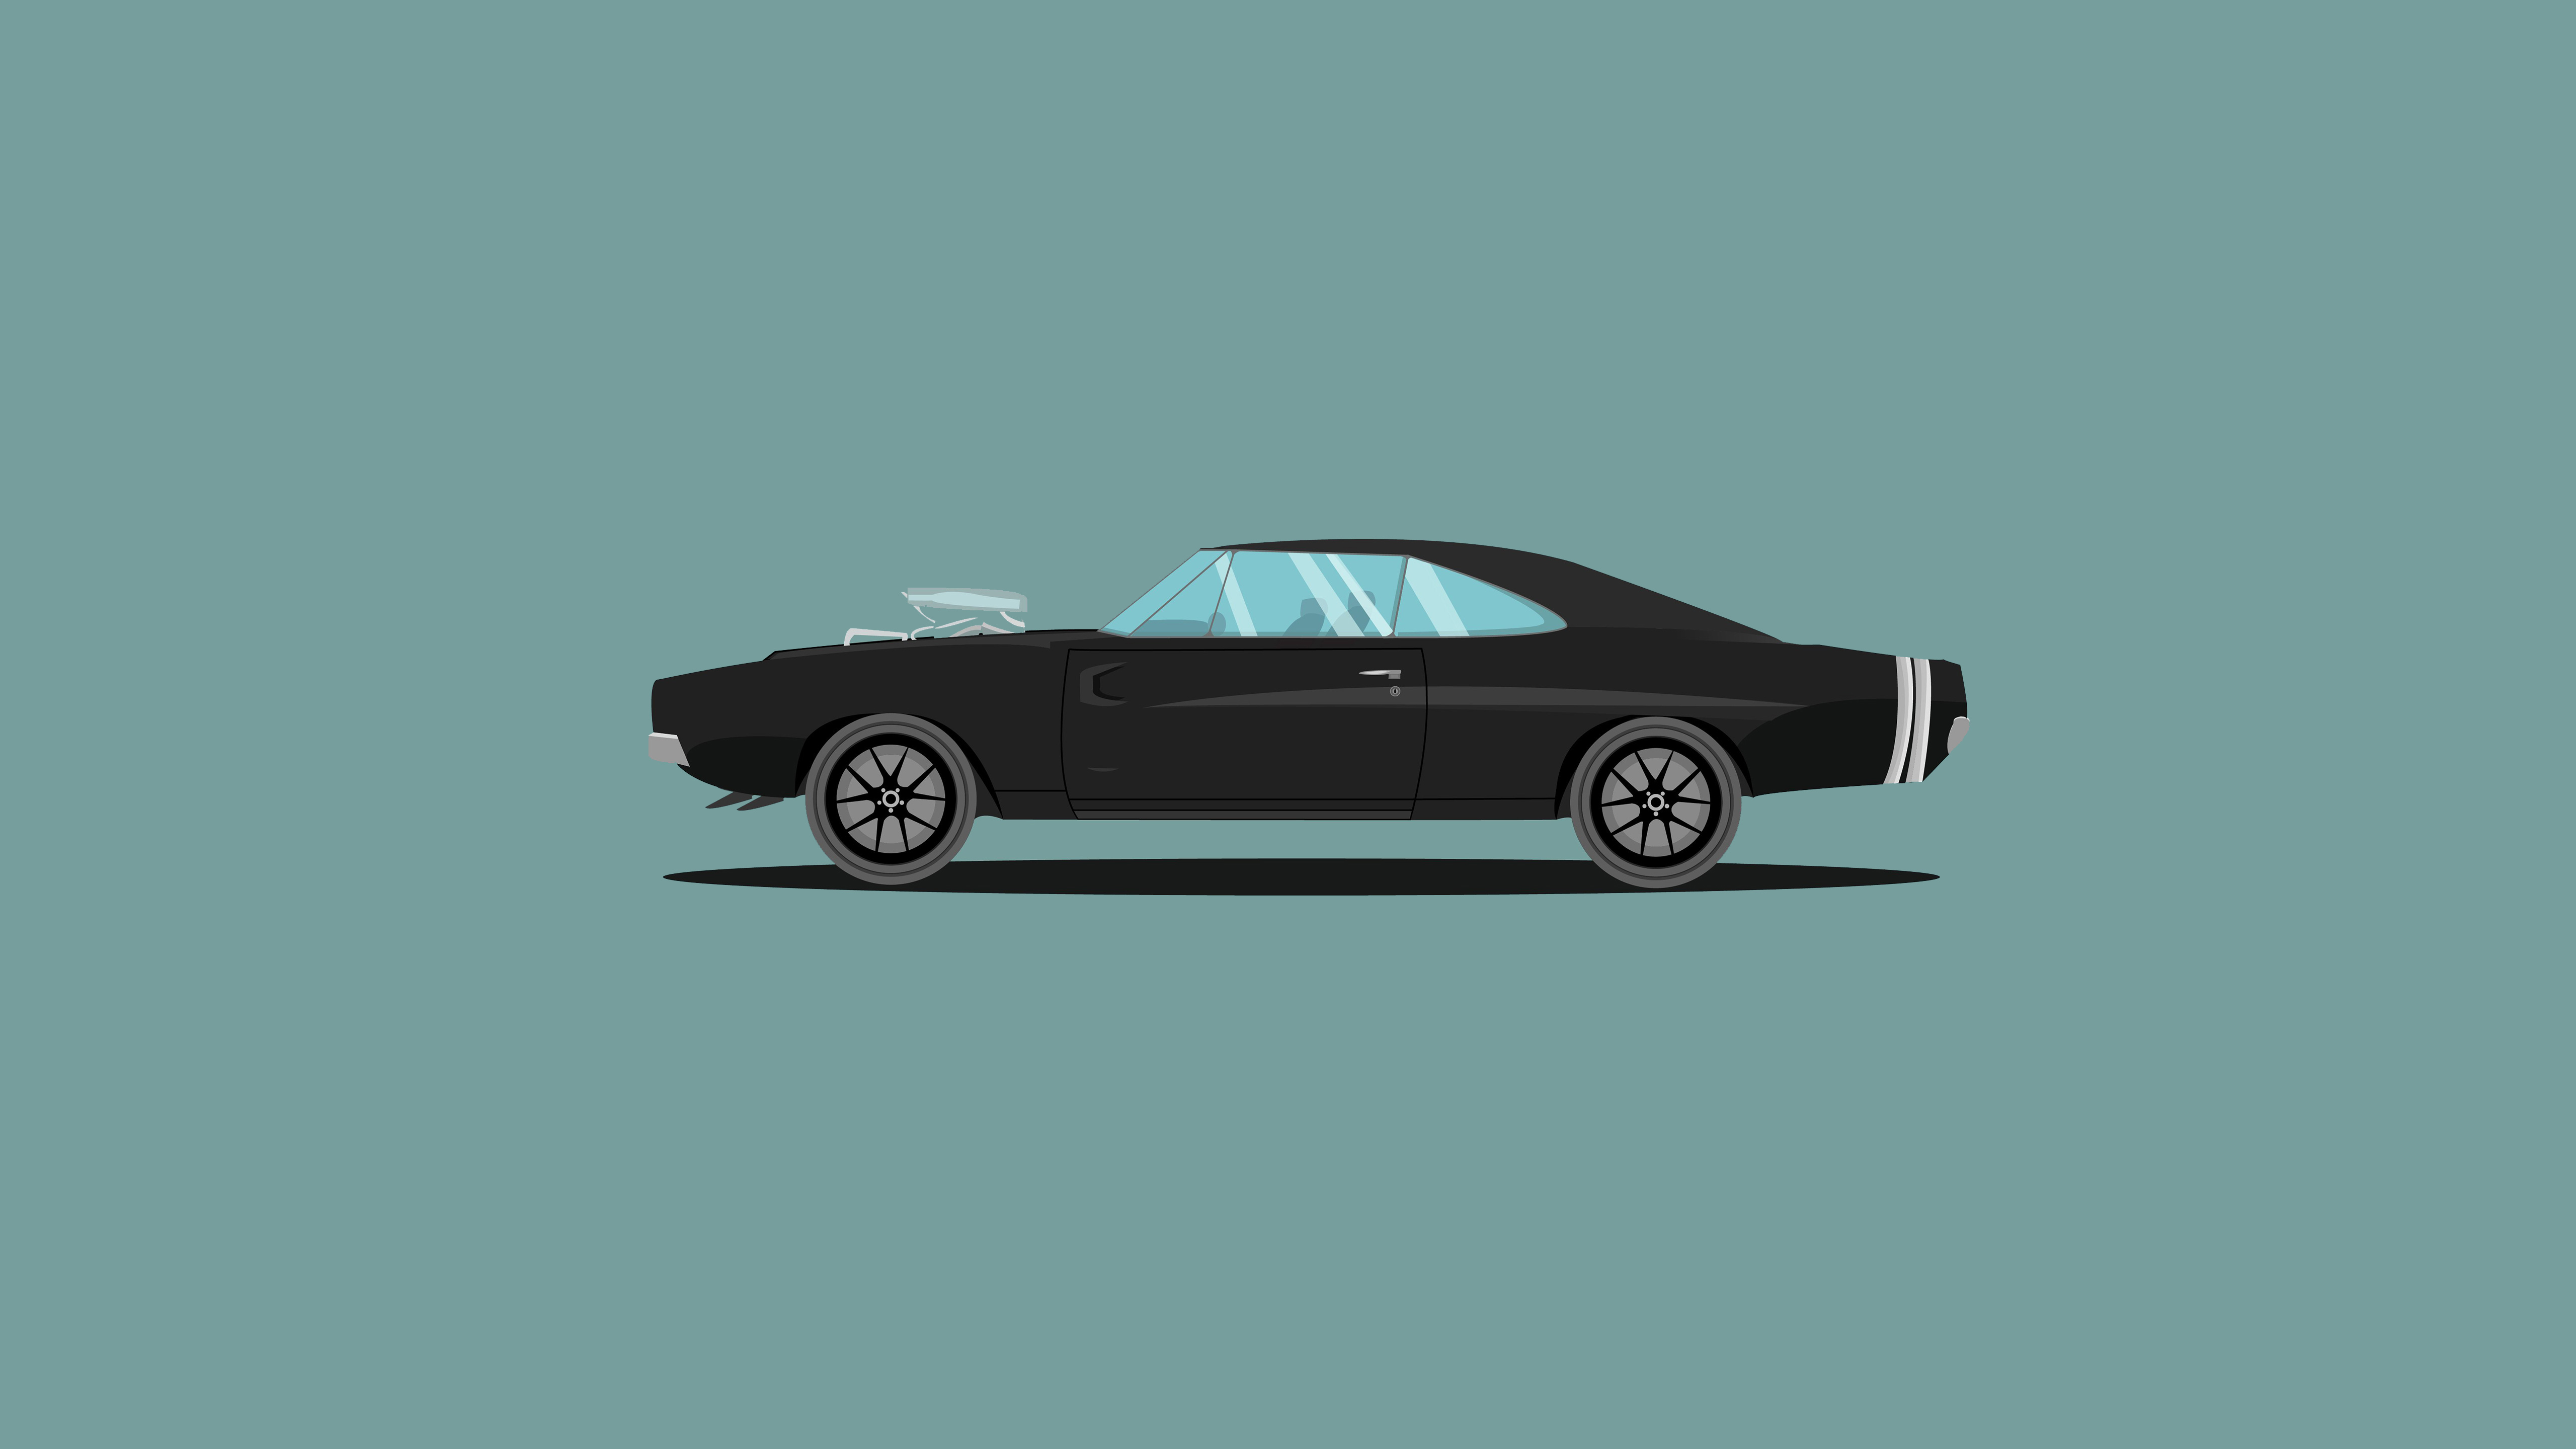 2560x1080 1970 Dodge Charger Fast And Furious Edition Illustration 2560x1080 Resolution Hd 4k Wallpapers Images Backgrounds Photos And Pictures